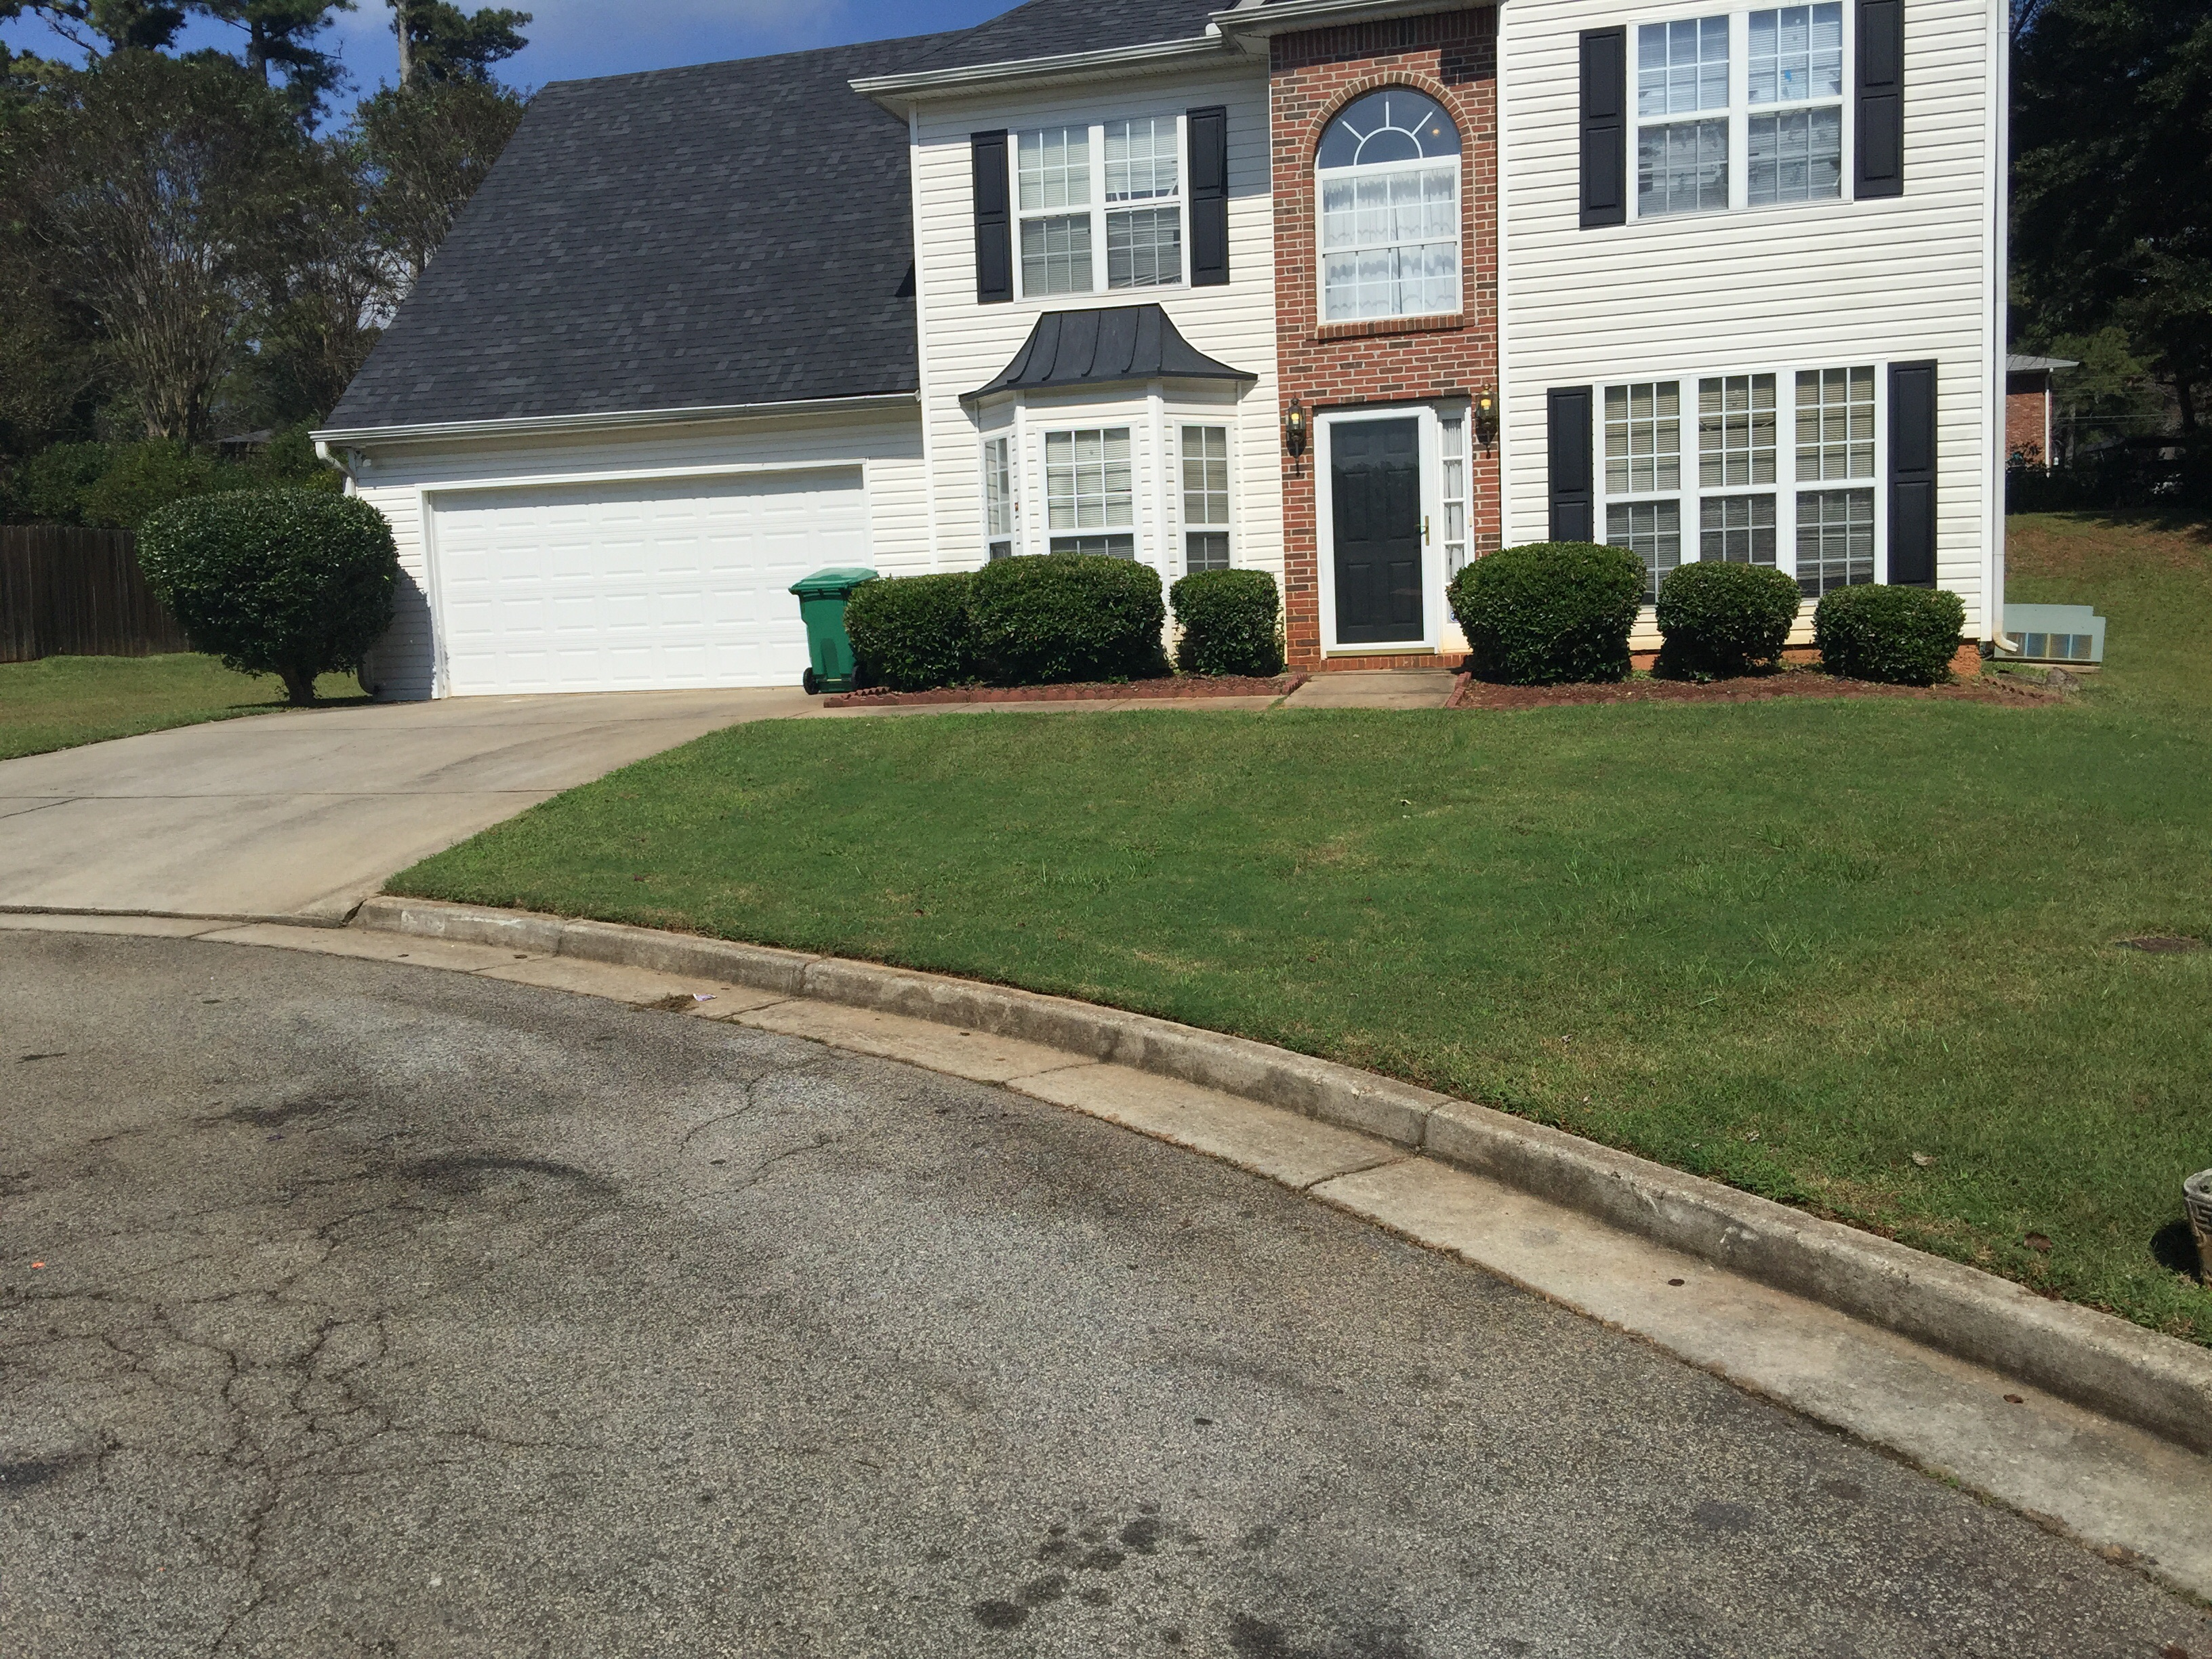 Yard mowing company in Decatur , GA, 30034